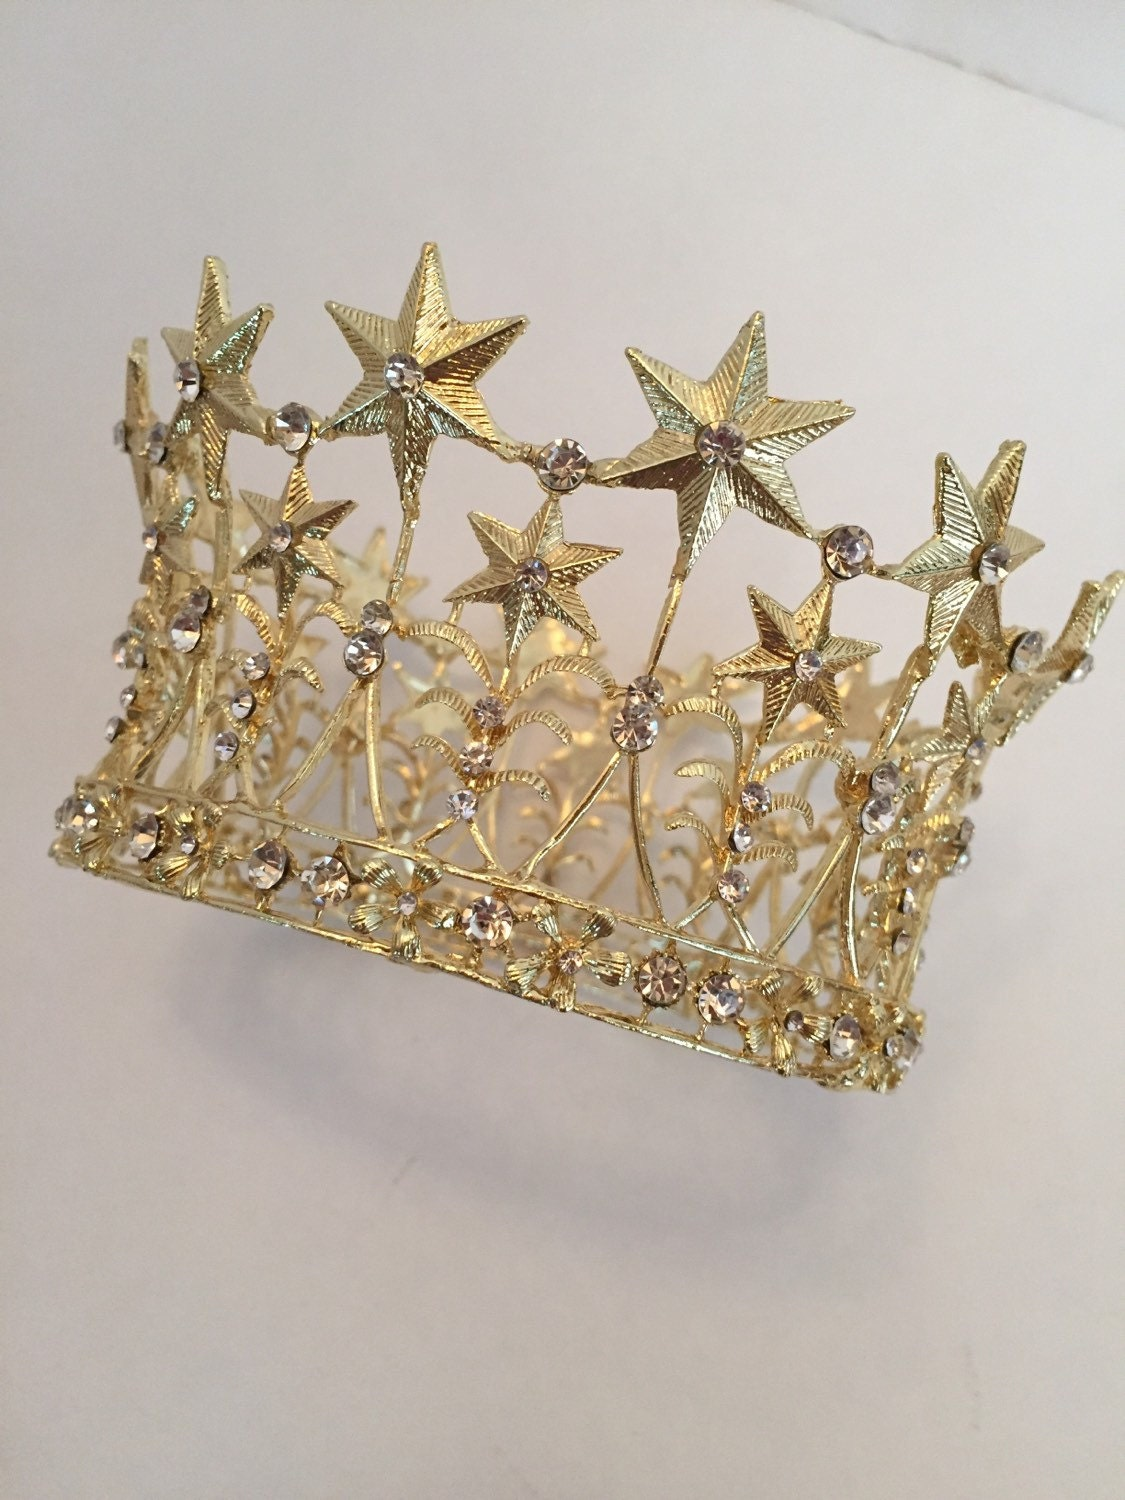 Metal Star Crown Ornate Gold Crown Cake Topper Wedding Cake